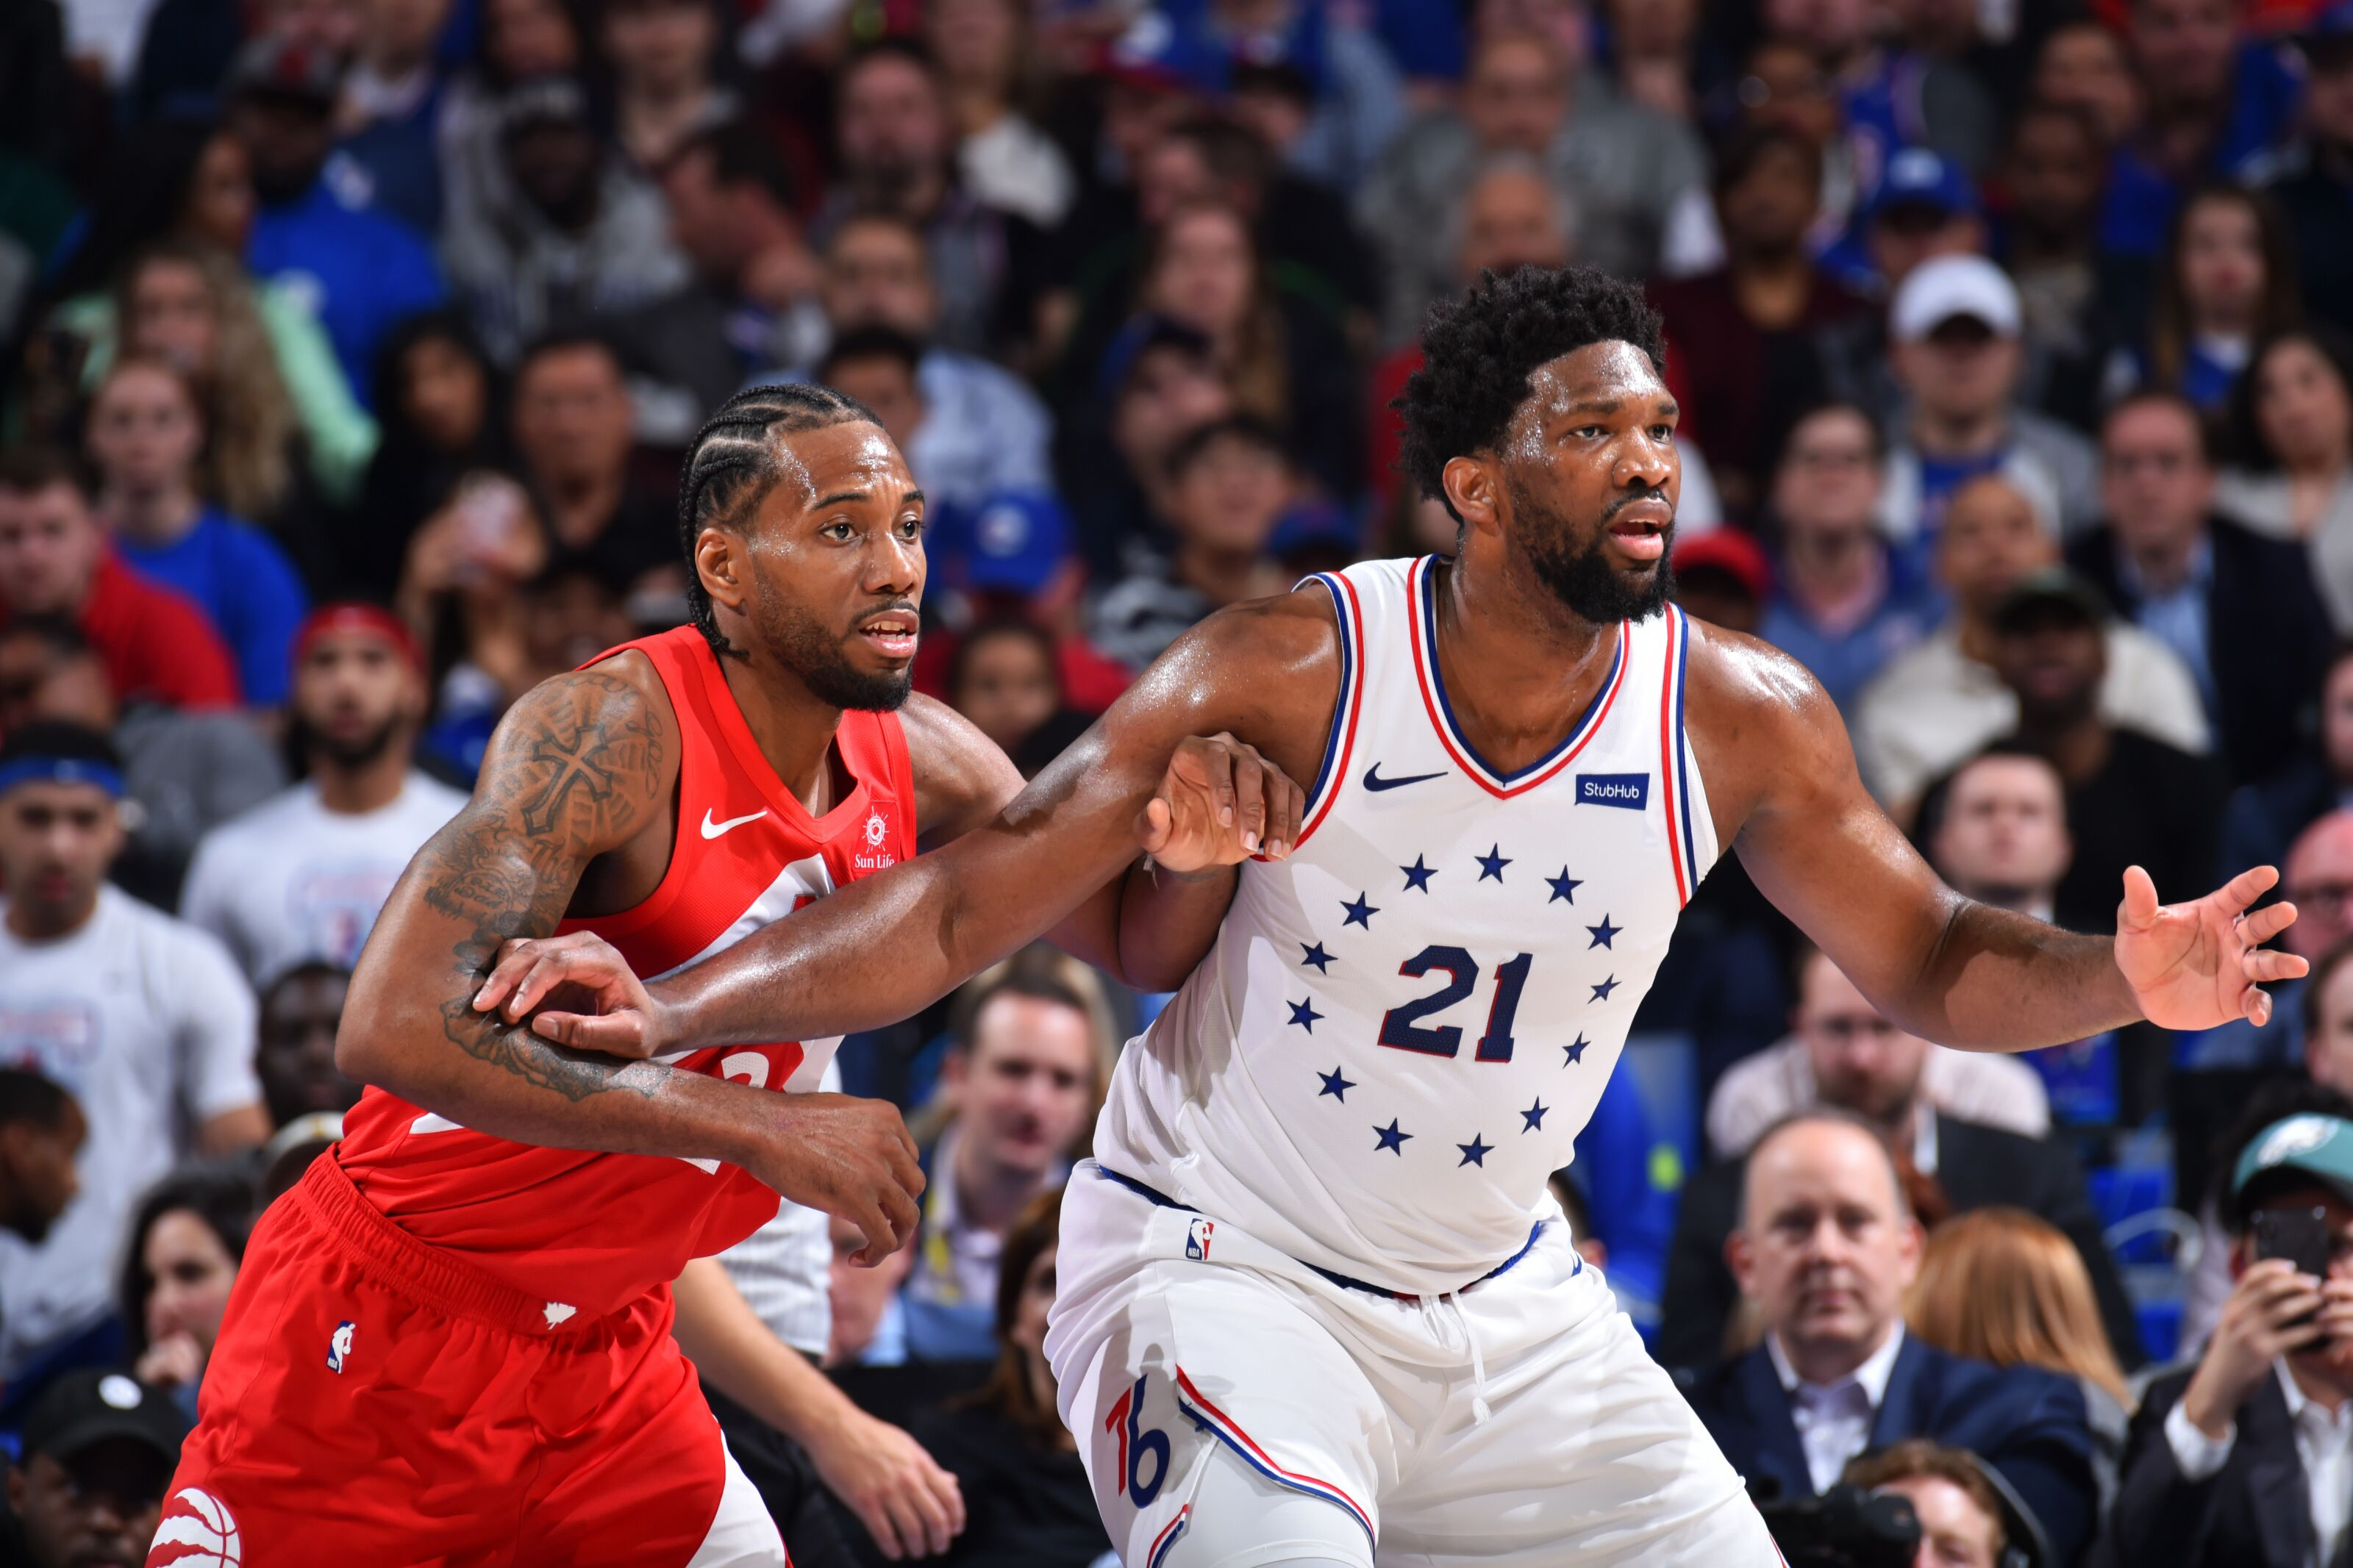 NBA Season Preview 2019-20: This might be the year of load management